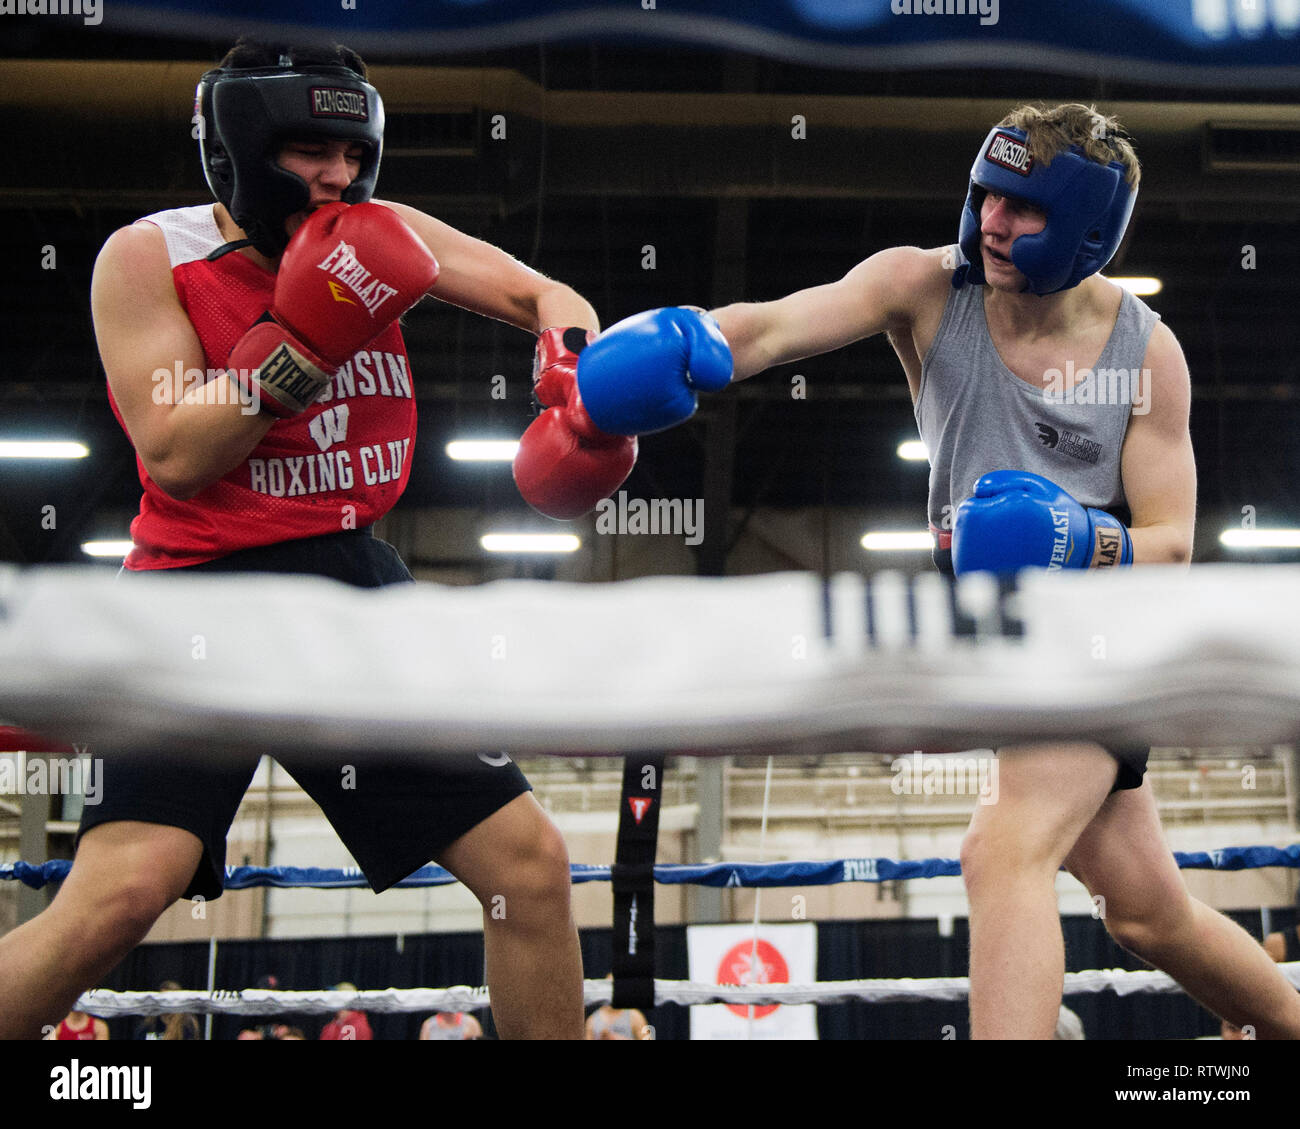 March 2, 2019: Emiliano Acorta of Wisconsin fights James Ferrari of Penn State in the Amateur Boxing competition at the Arnold Sports Festival in Columbus, Ohio, USA. Brent Clark/Alamy Live News Stock Photo